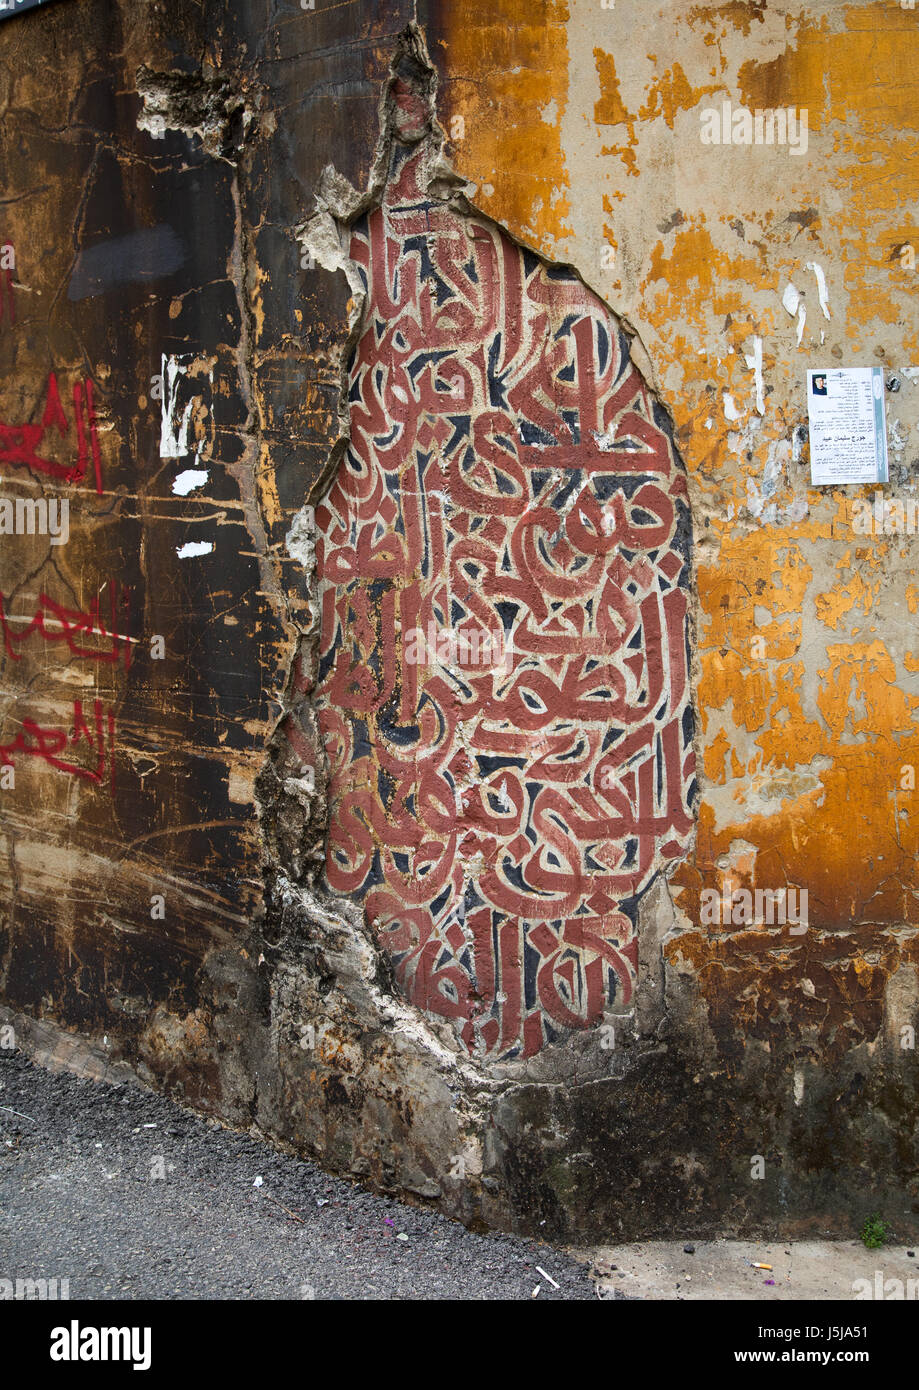 Graffitis on a wall in Mar Mikhael, Beirut Governorate, Beirut, Lebanon - Stock-Bilder